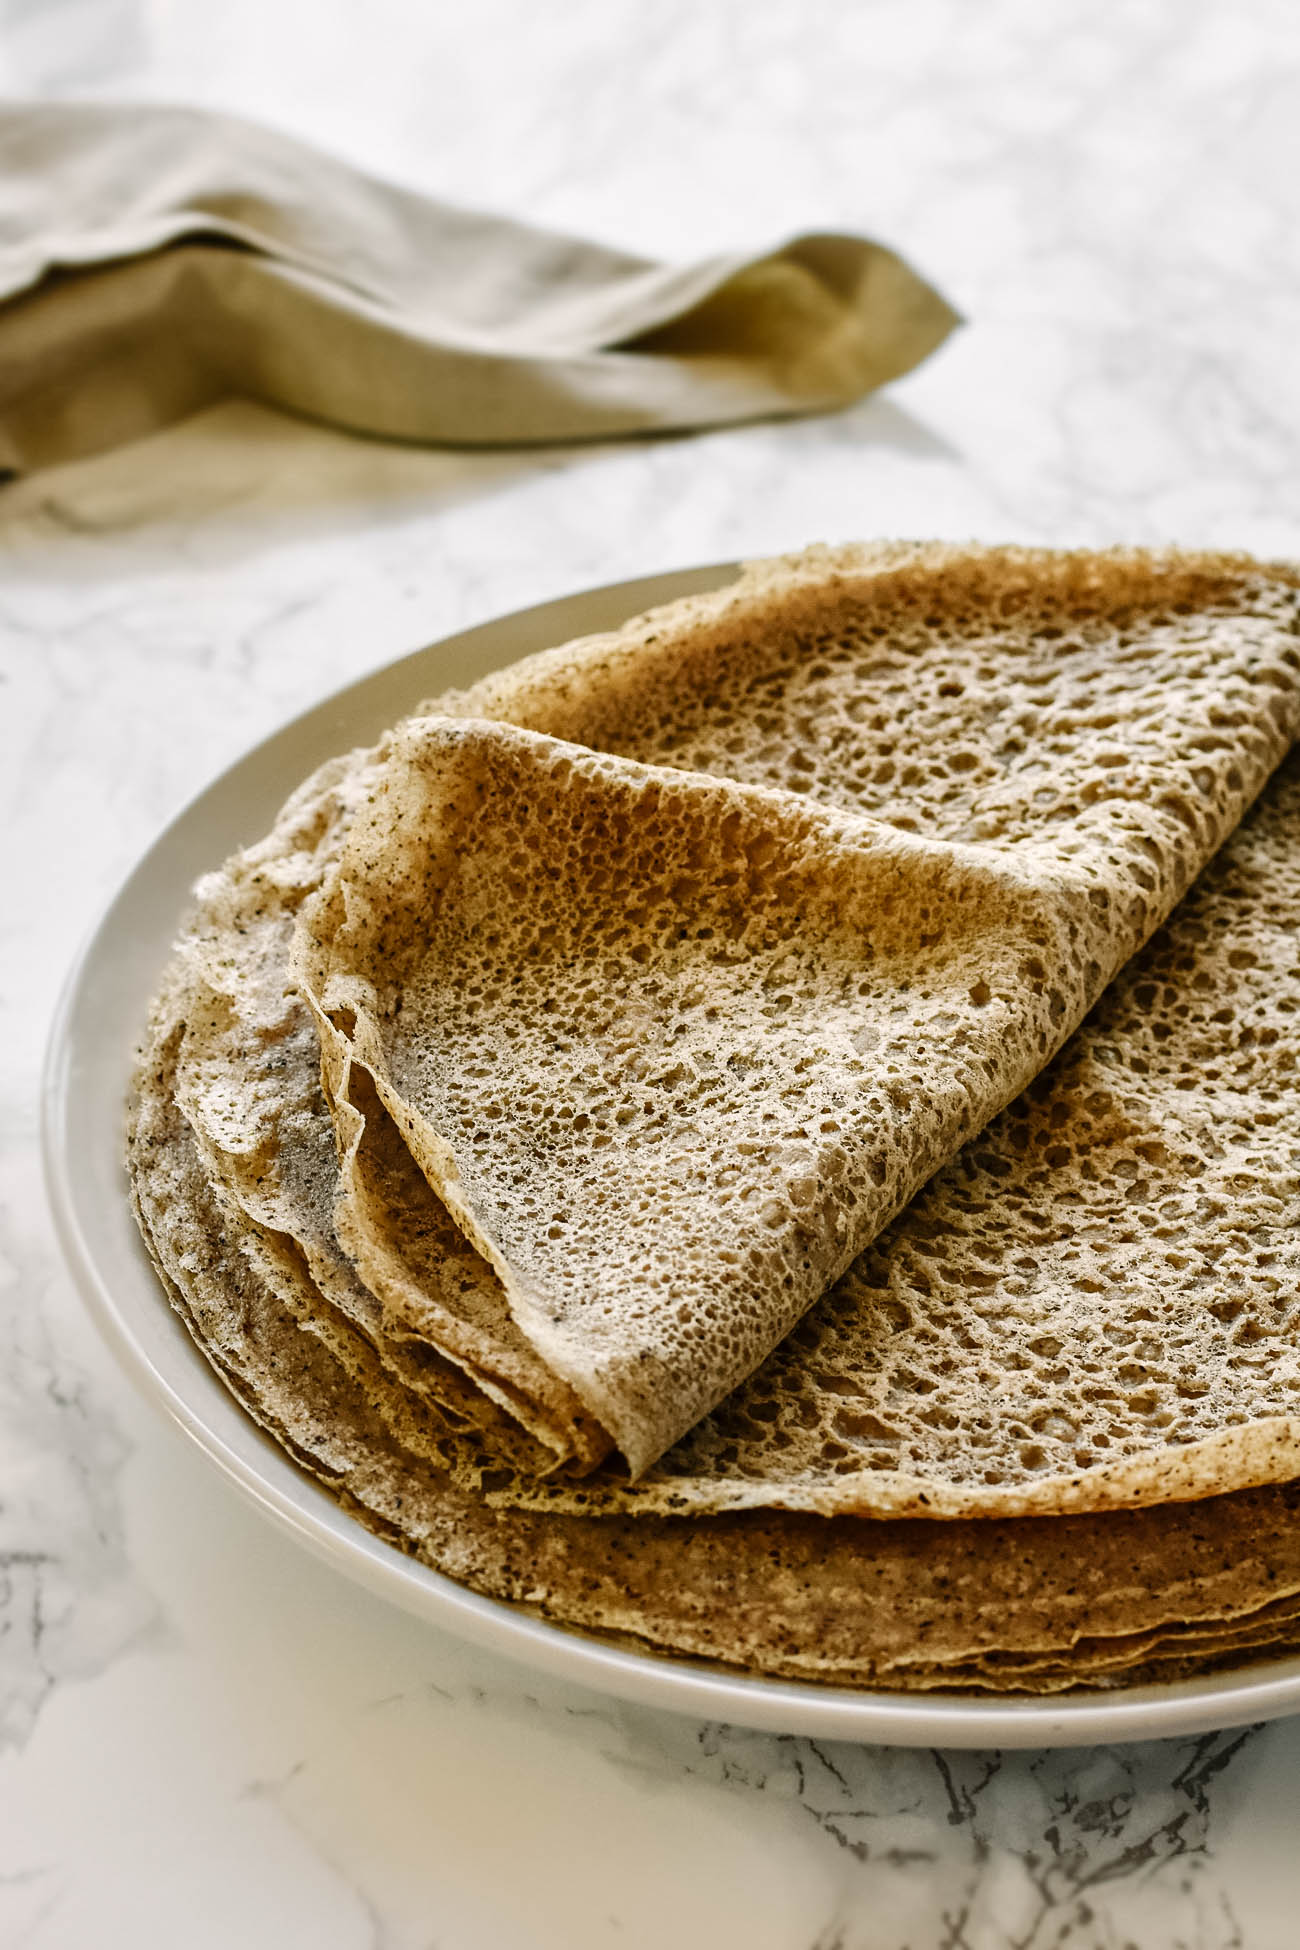 Buckwheat Crepes From Brittany Gluten Free Pardon Your French